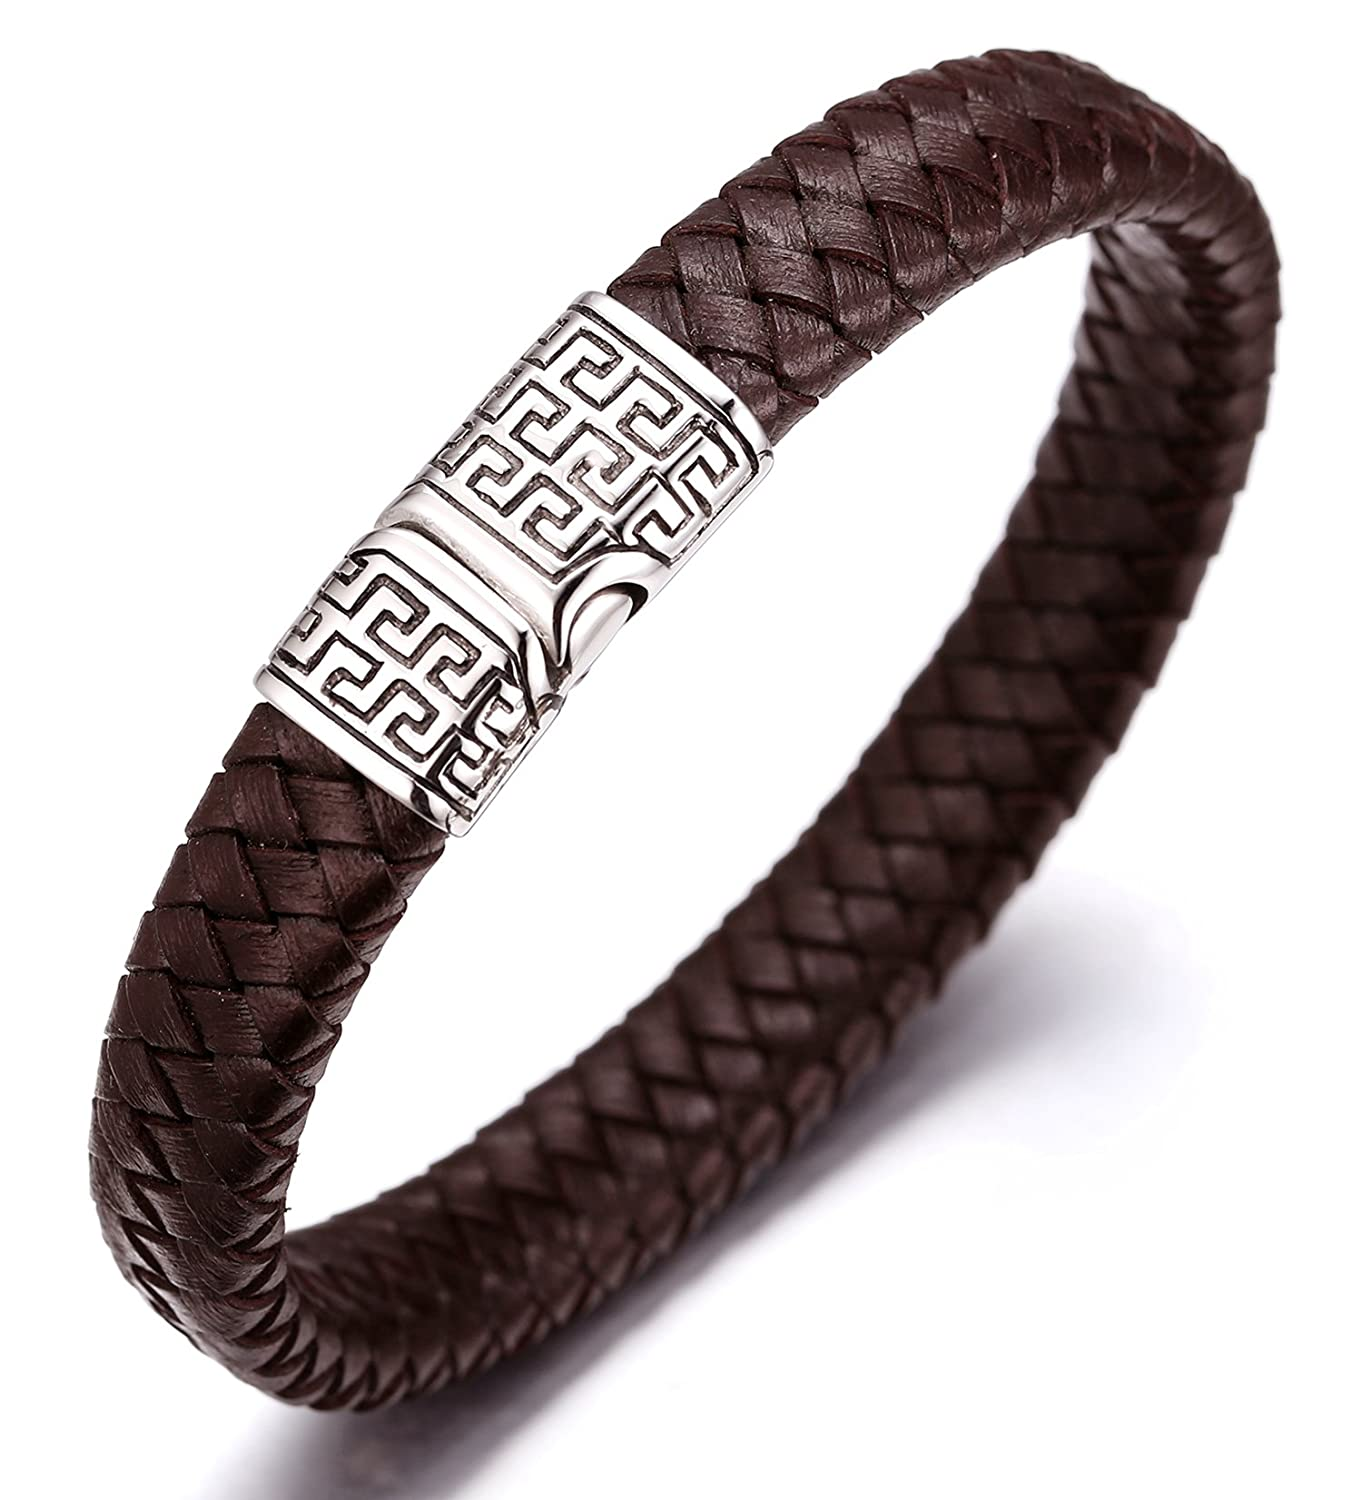 Halukakah SOLO Men's Genuine Leather Bracelet Titanium Clasp with Magnets 8.46'(21.5cm) (Black/Brown) with FREE Giftbox